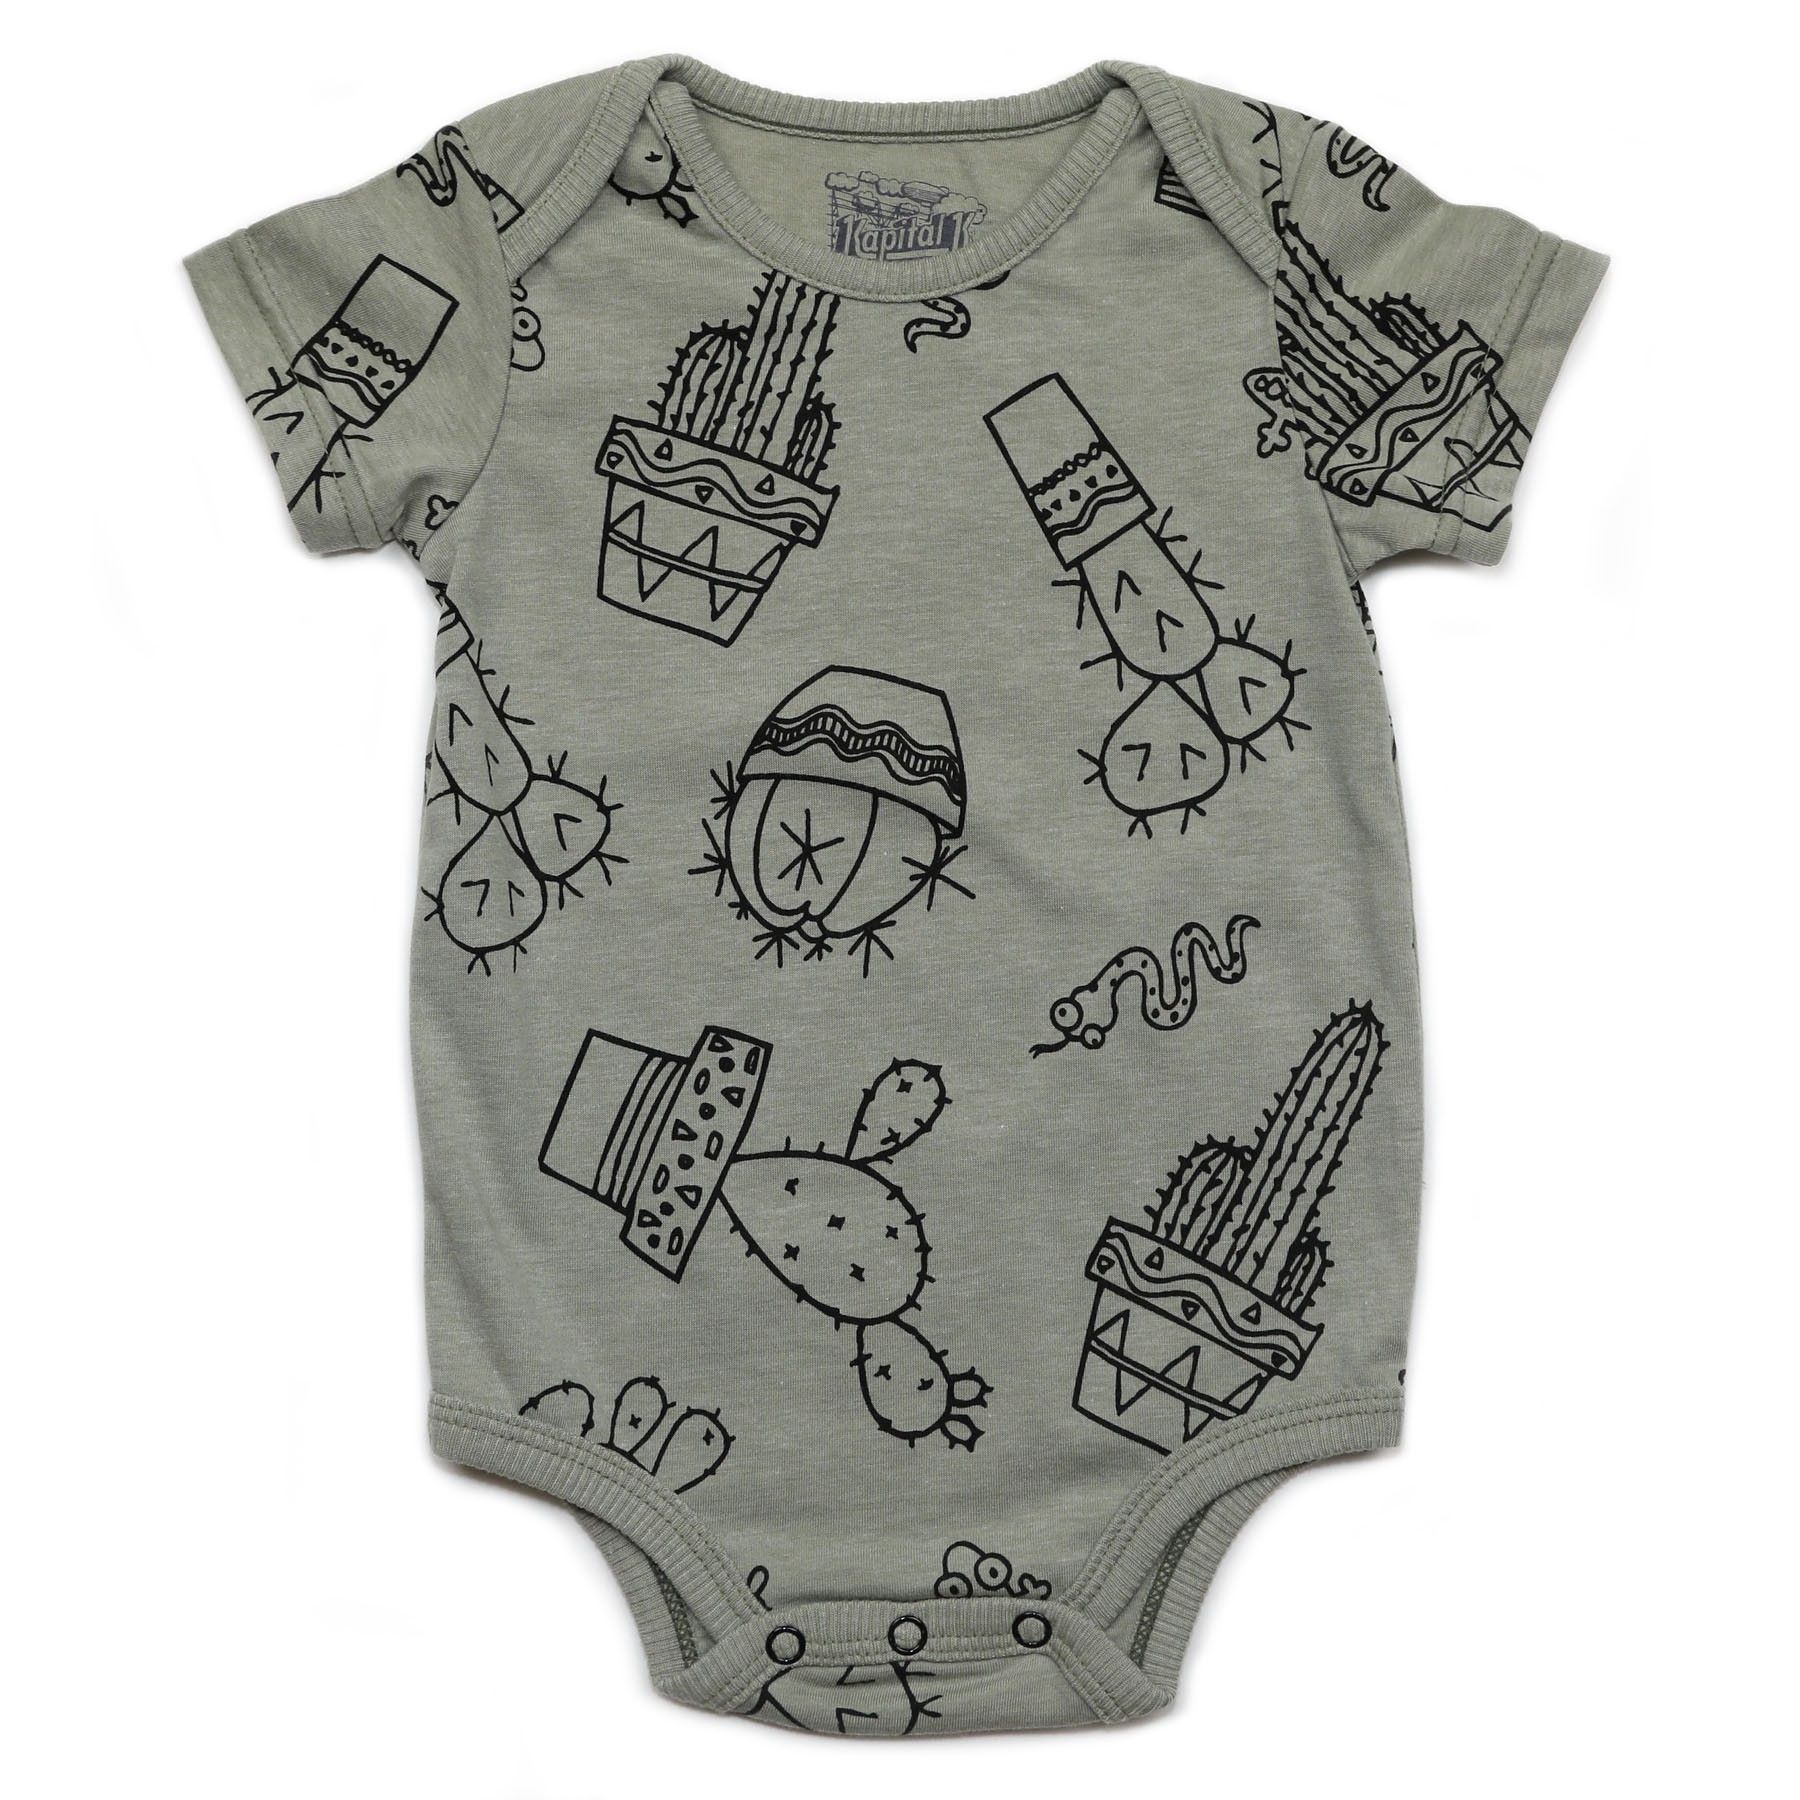 Qq1-asd-store David Allan Coe Boys//Girls Baby Cotton Long Sleeve Romper Warm Bodysuit